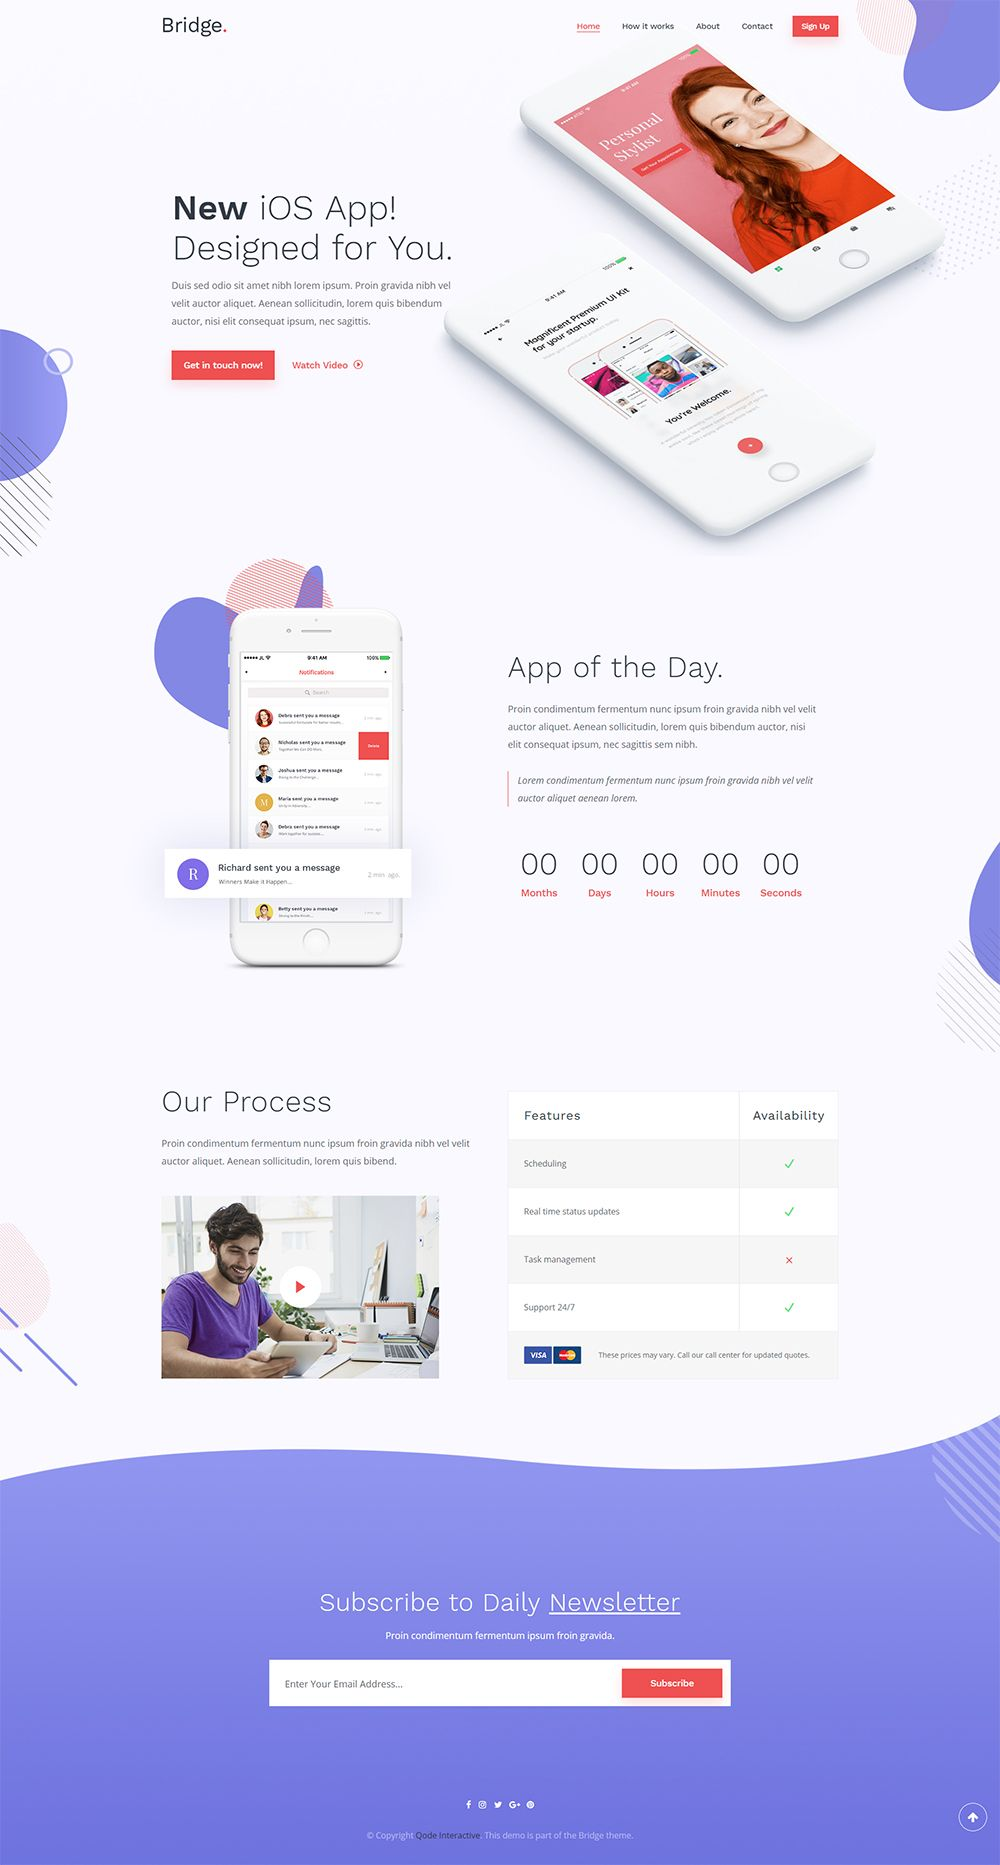 Set up a stunning app landing page in no time with Bridge